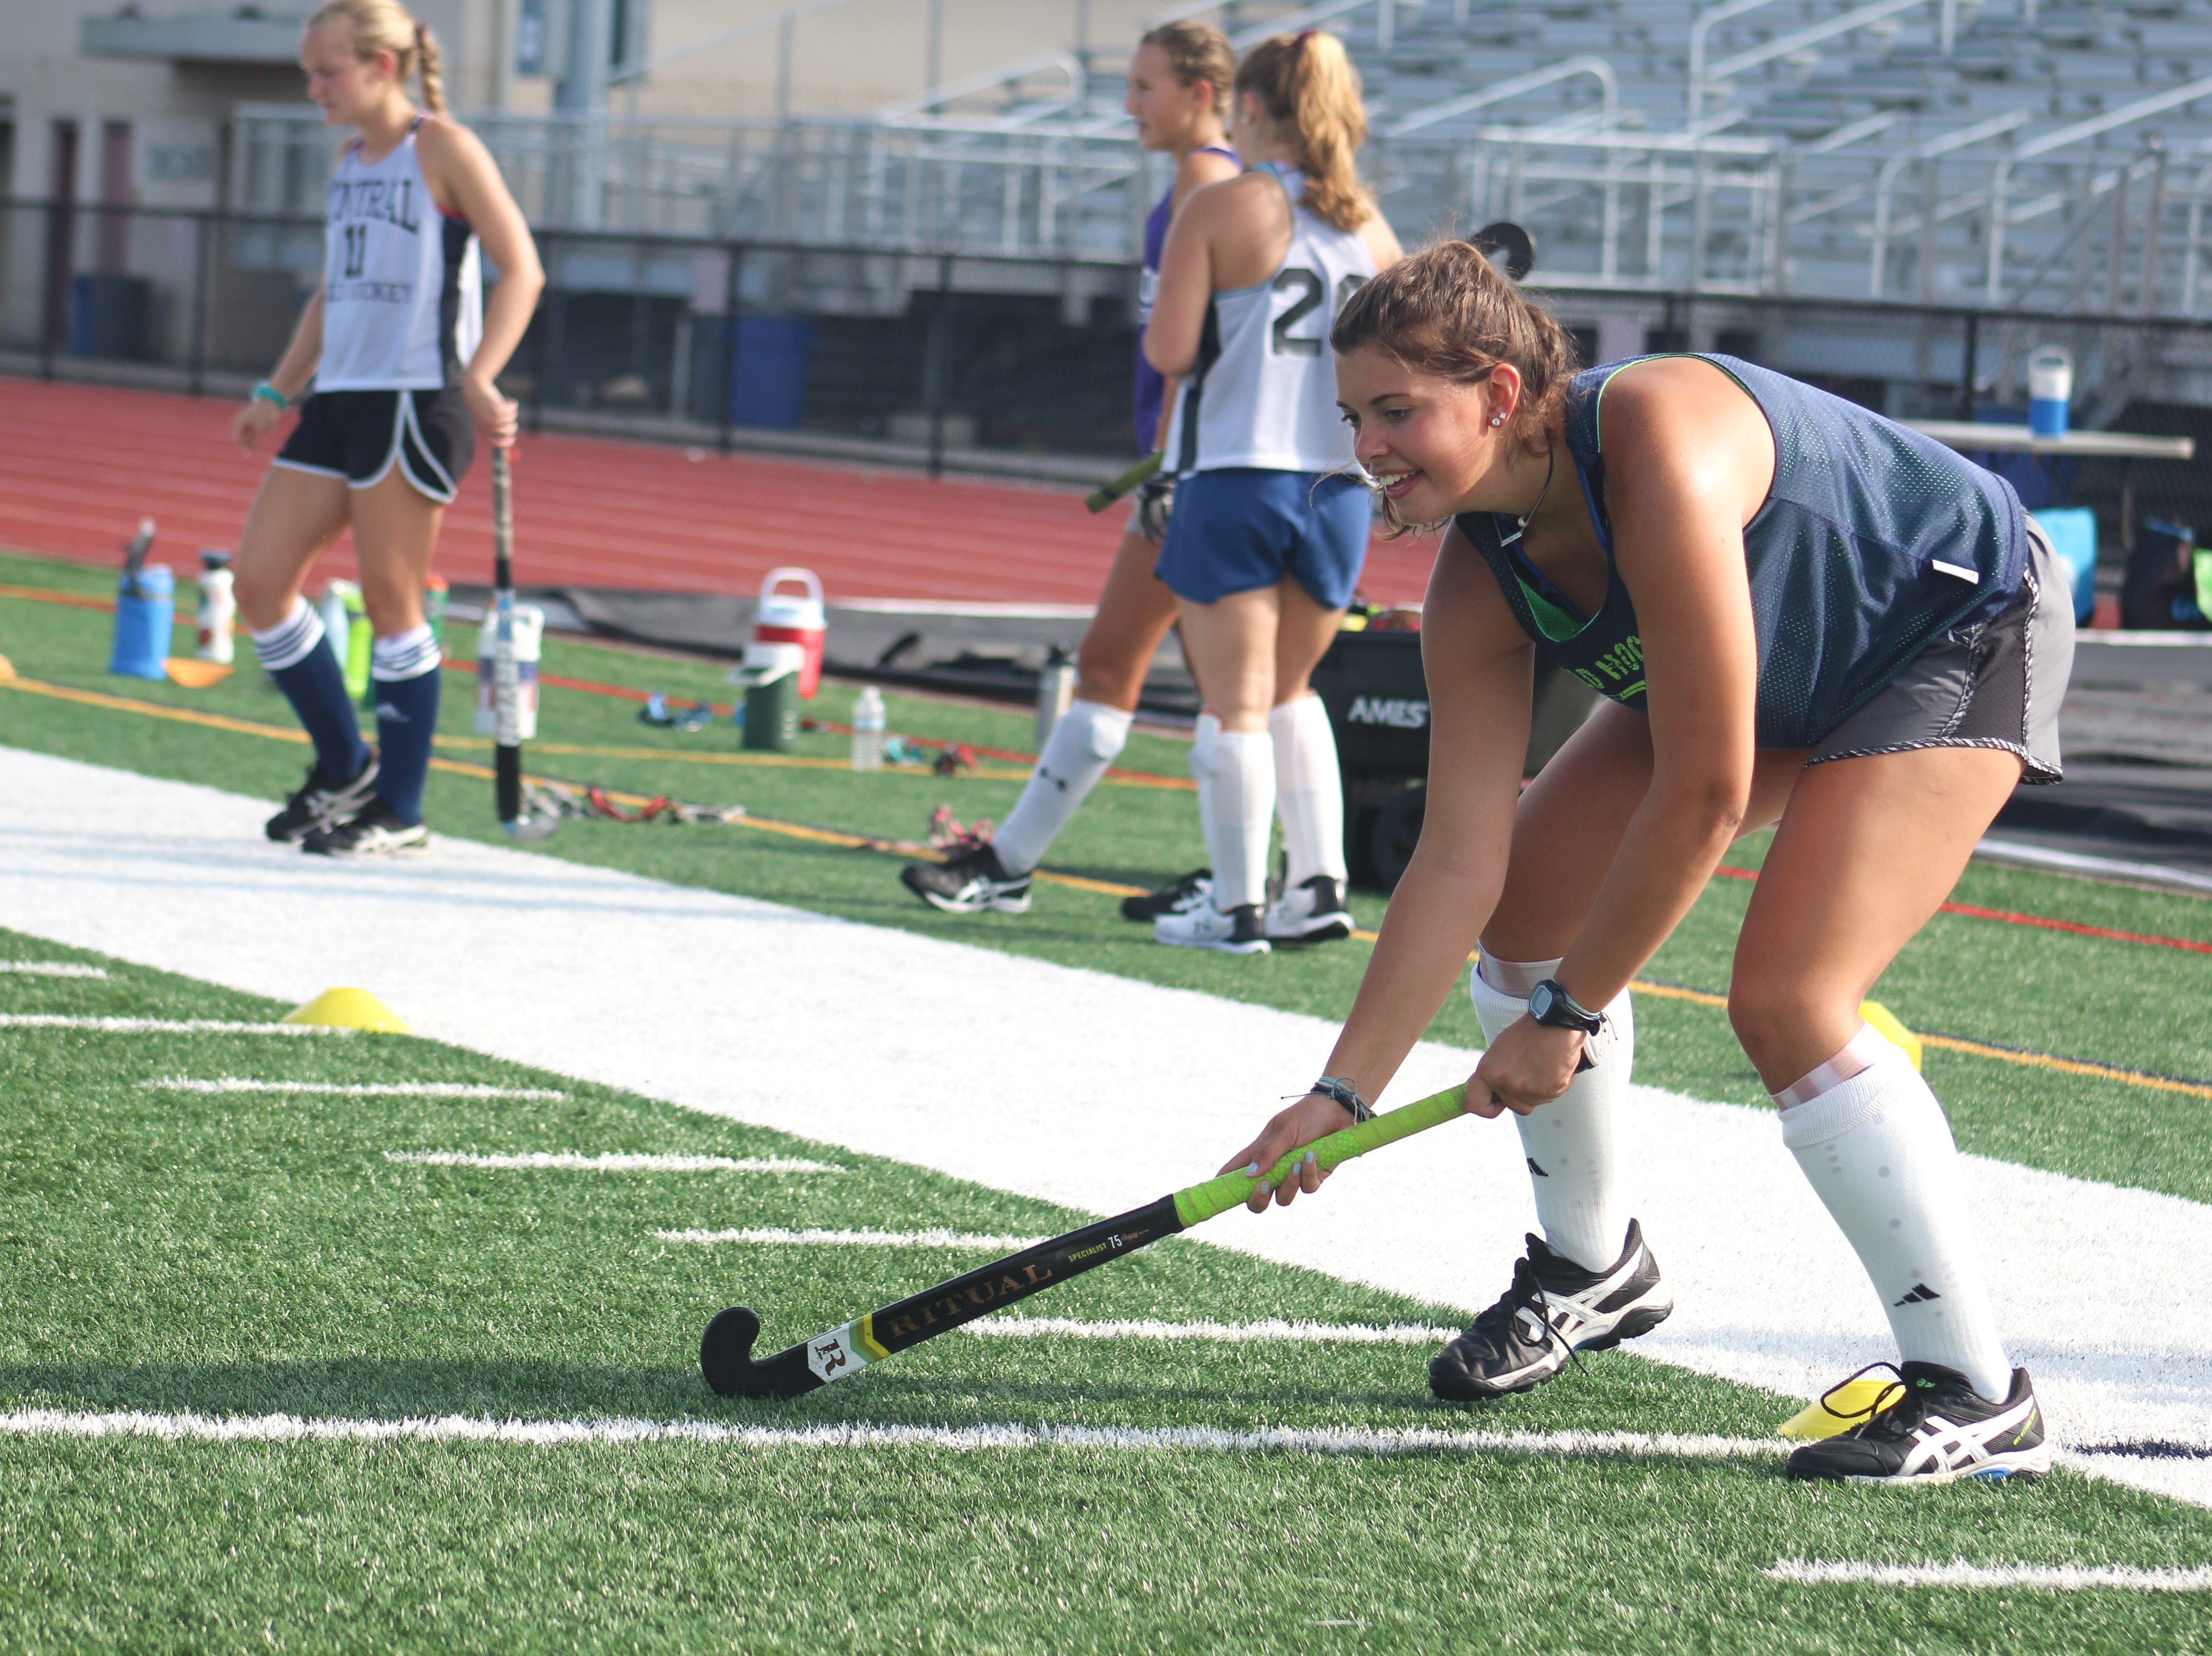 A Central York High School field hockey player prepares to receive a pass on August 13, 2018.